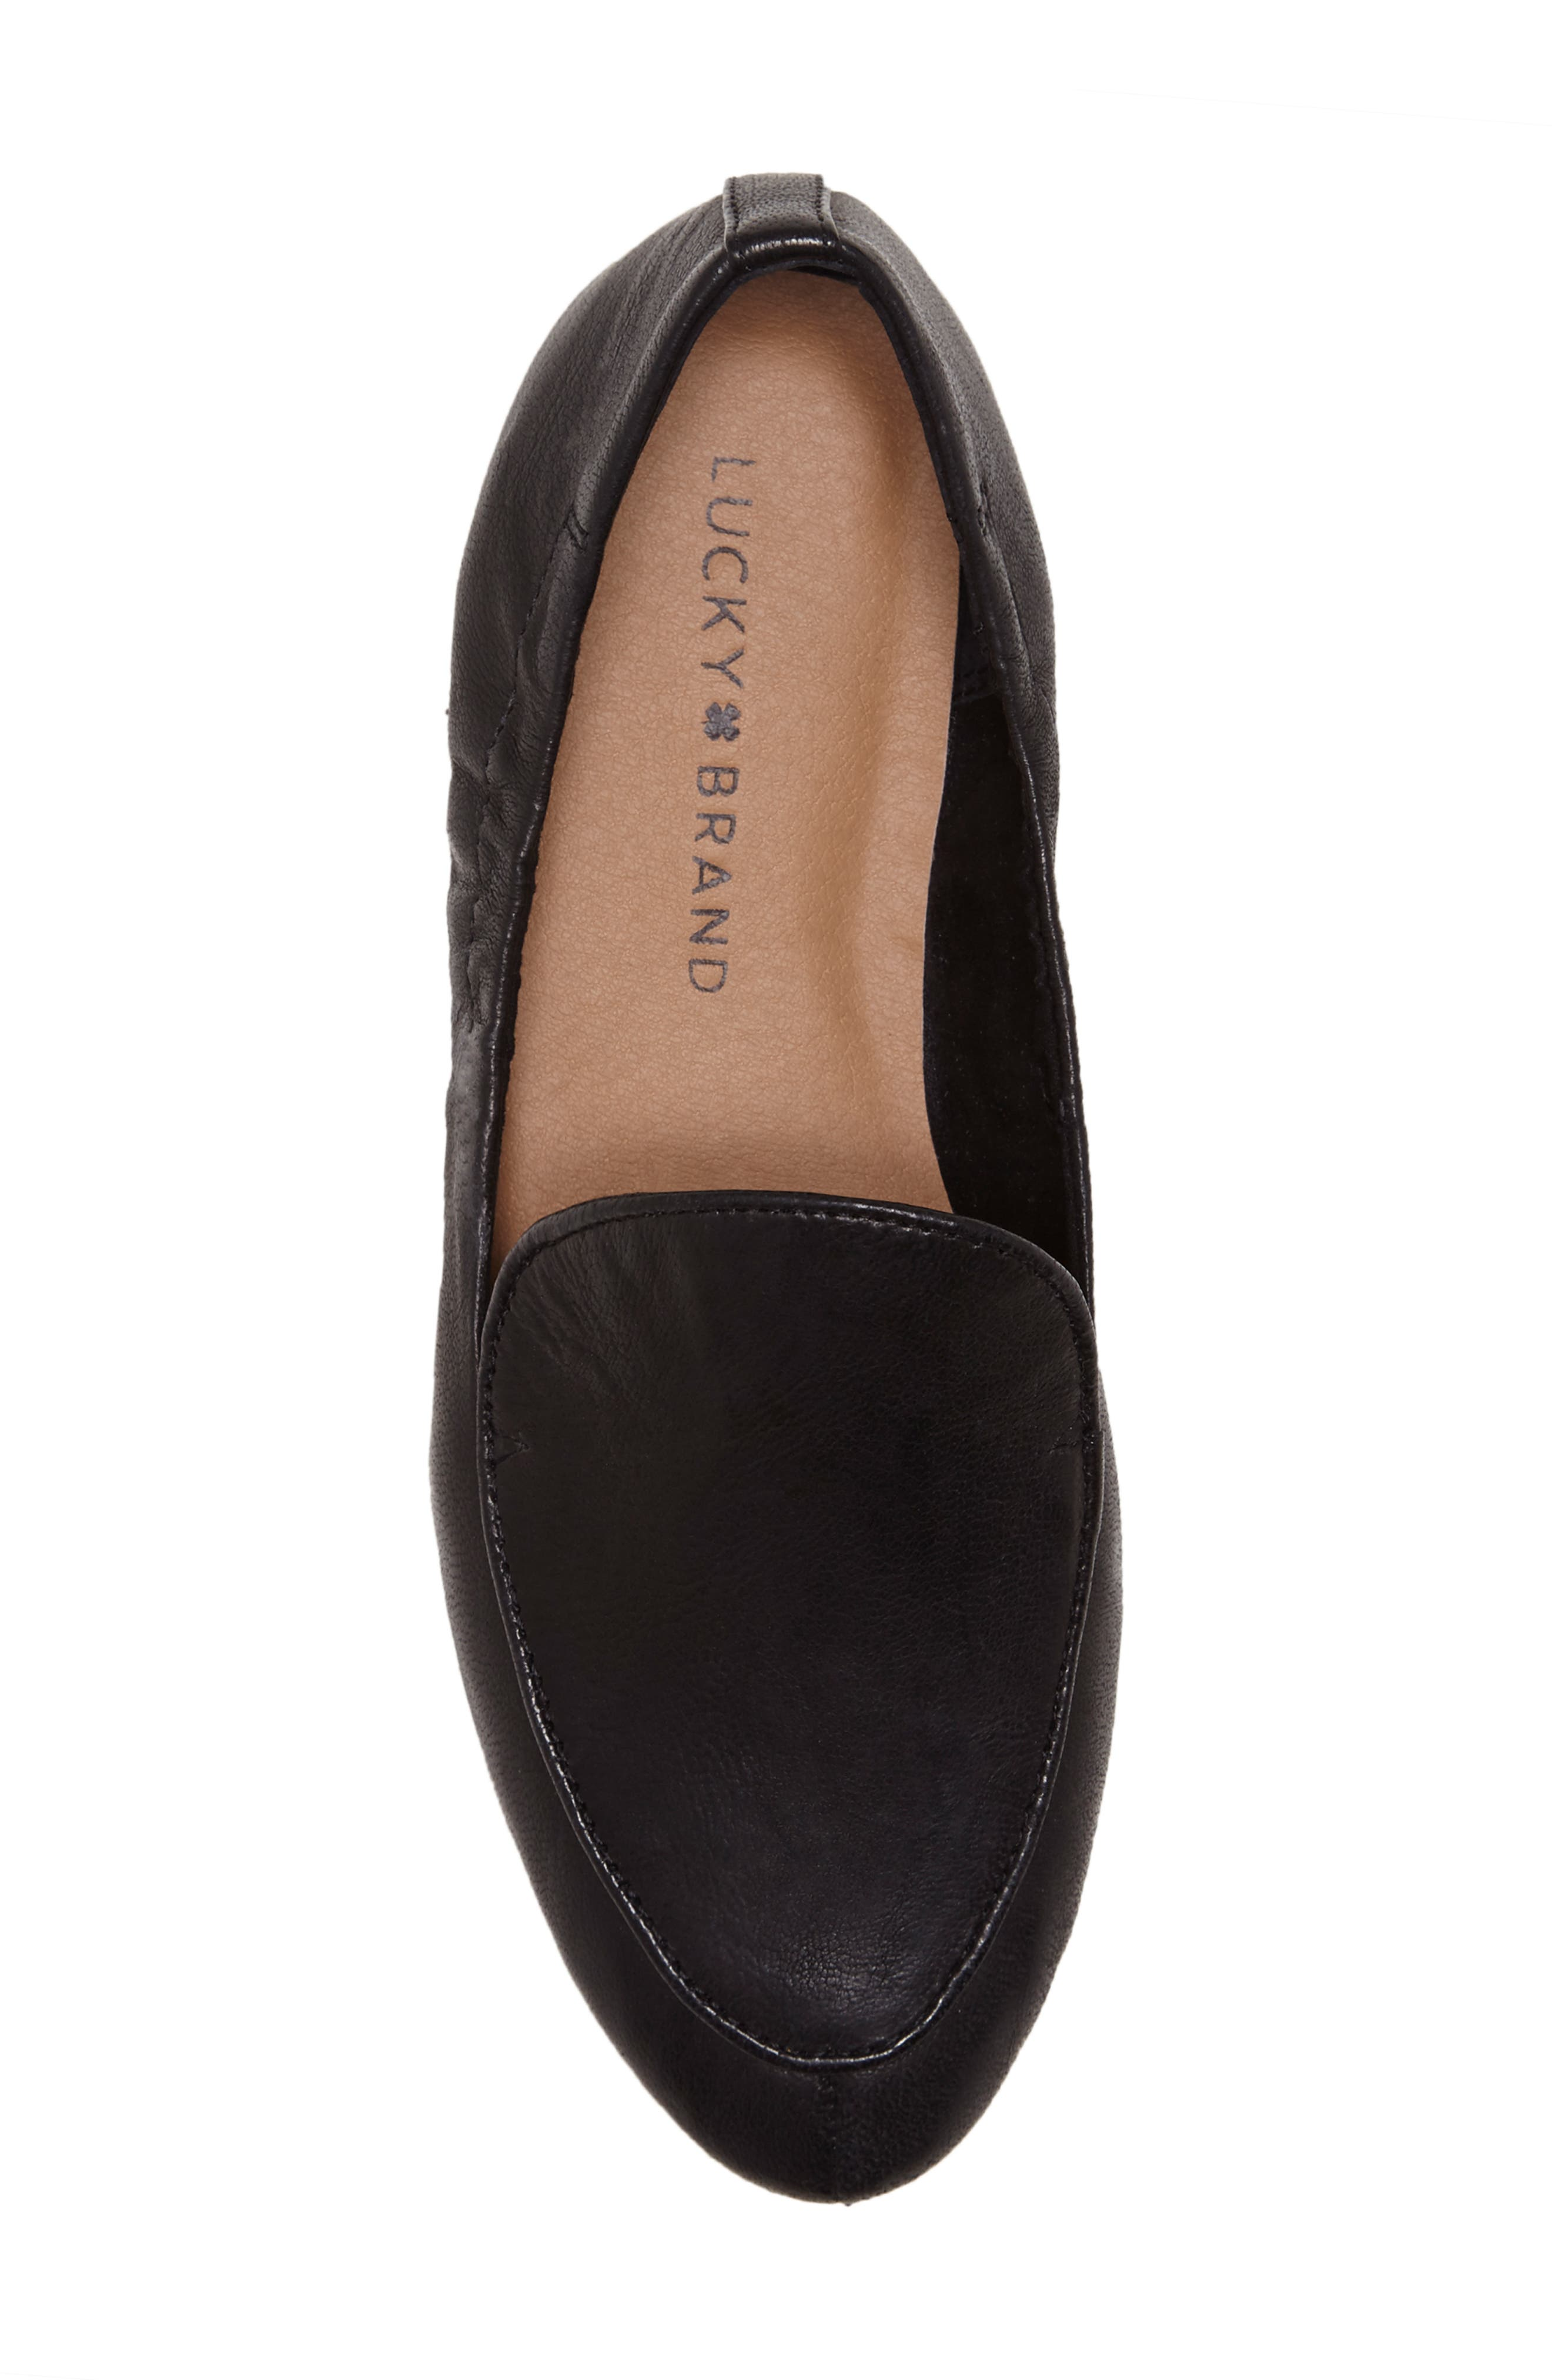 LUCKY BRAND, Bellana Loafer, Alternate thumbnail 4, color, BLACK LEATHER